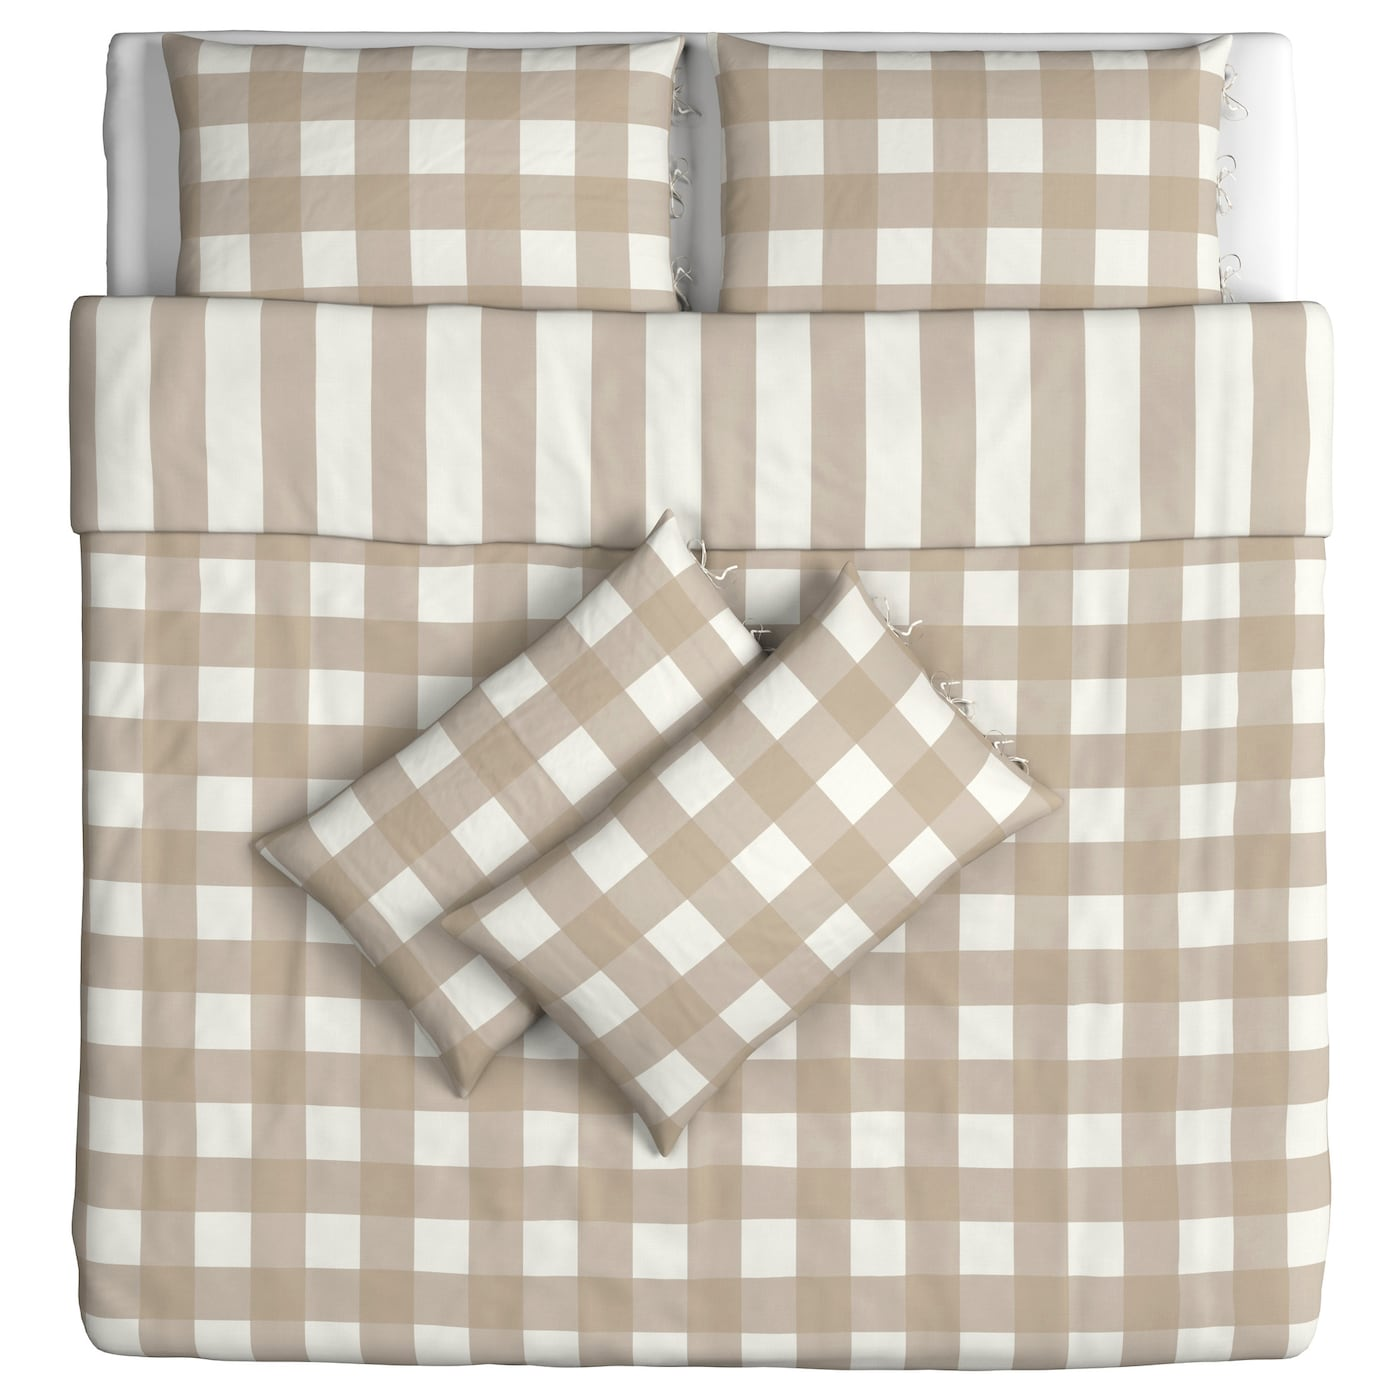 IKEA EMMIE RUTA quilt cover and 4 pillowcases Decorative ribbons keep the quilt in place.